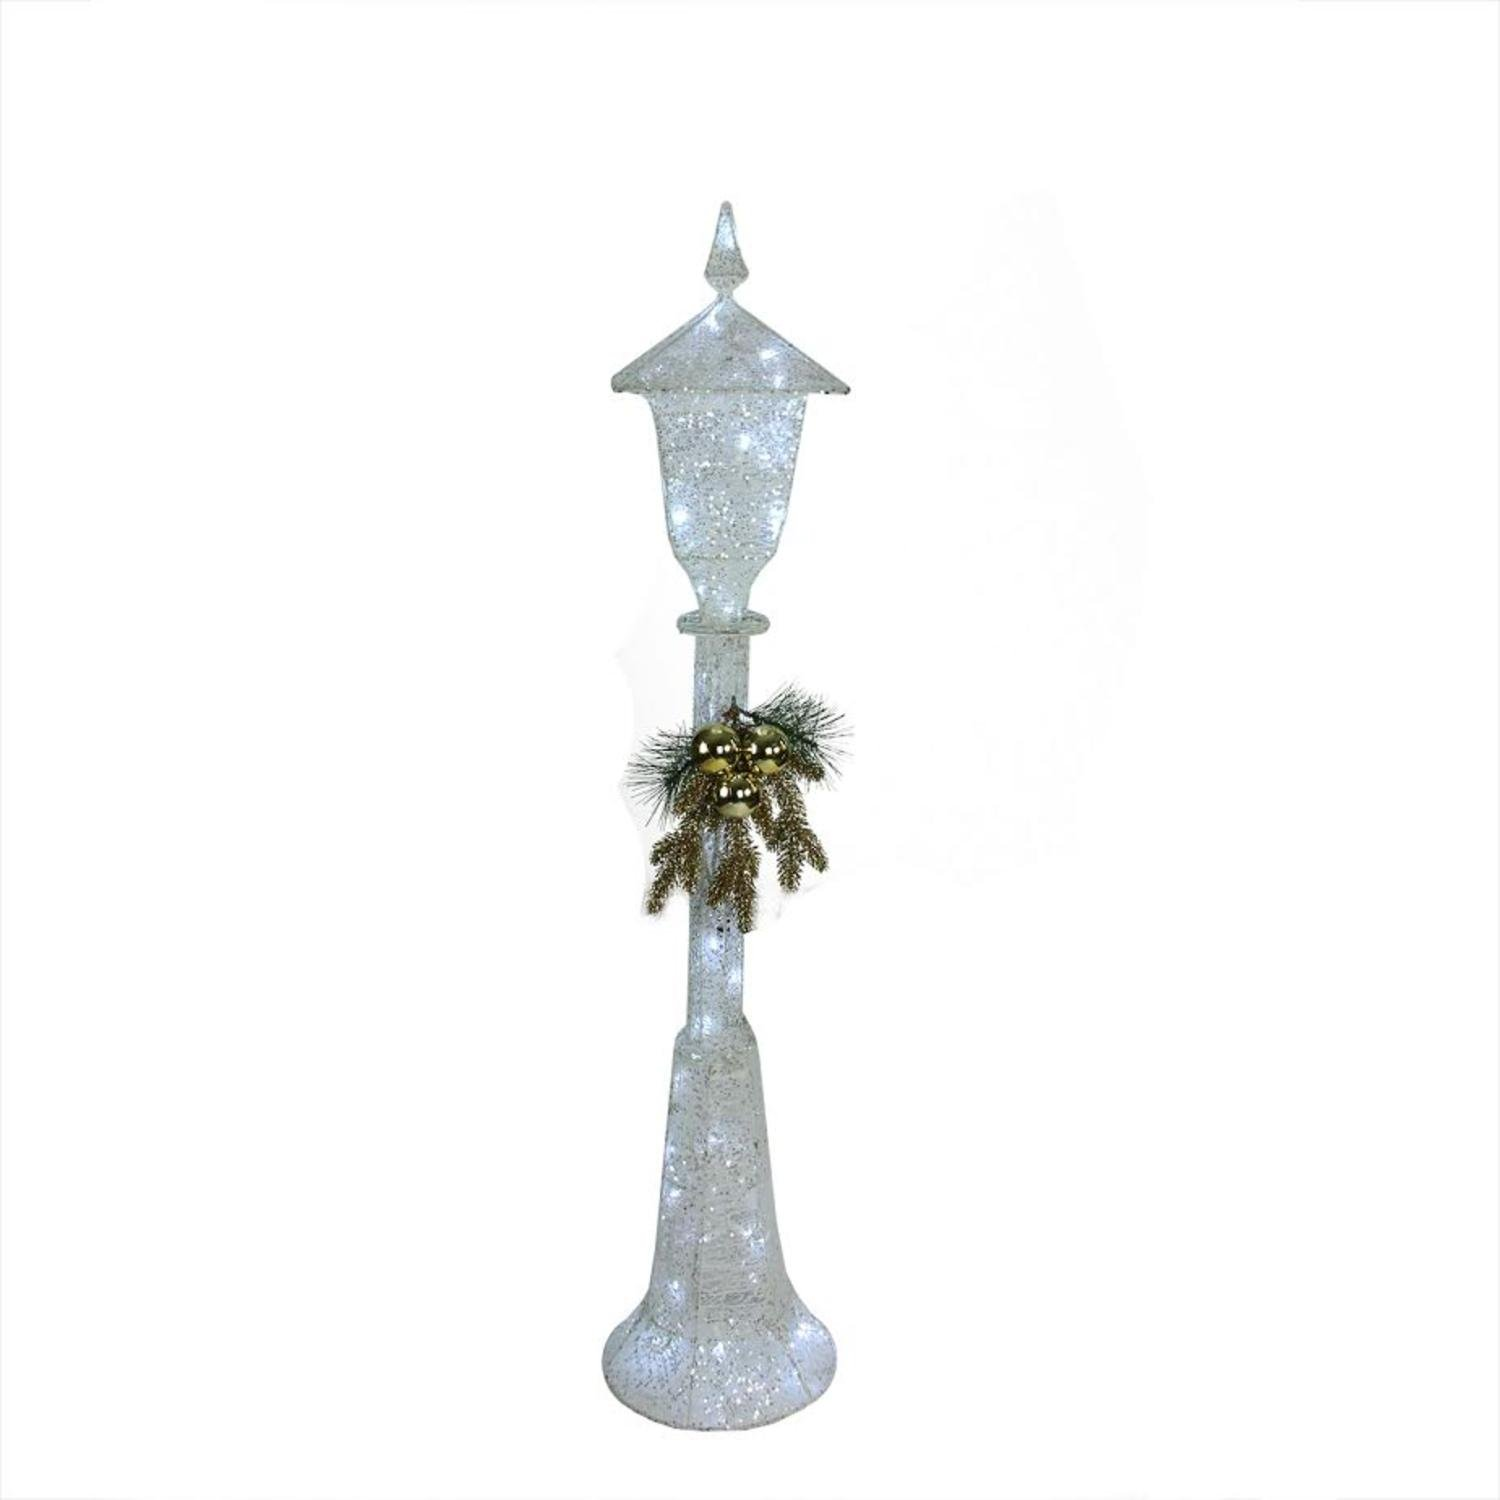 Northlight 48'' LED Lighted Indoor/Outdoor Lamp Post Christmas Decoration - Cool White Lights